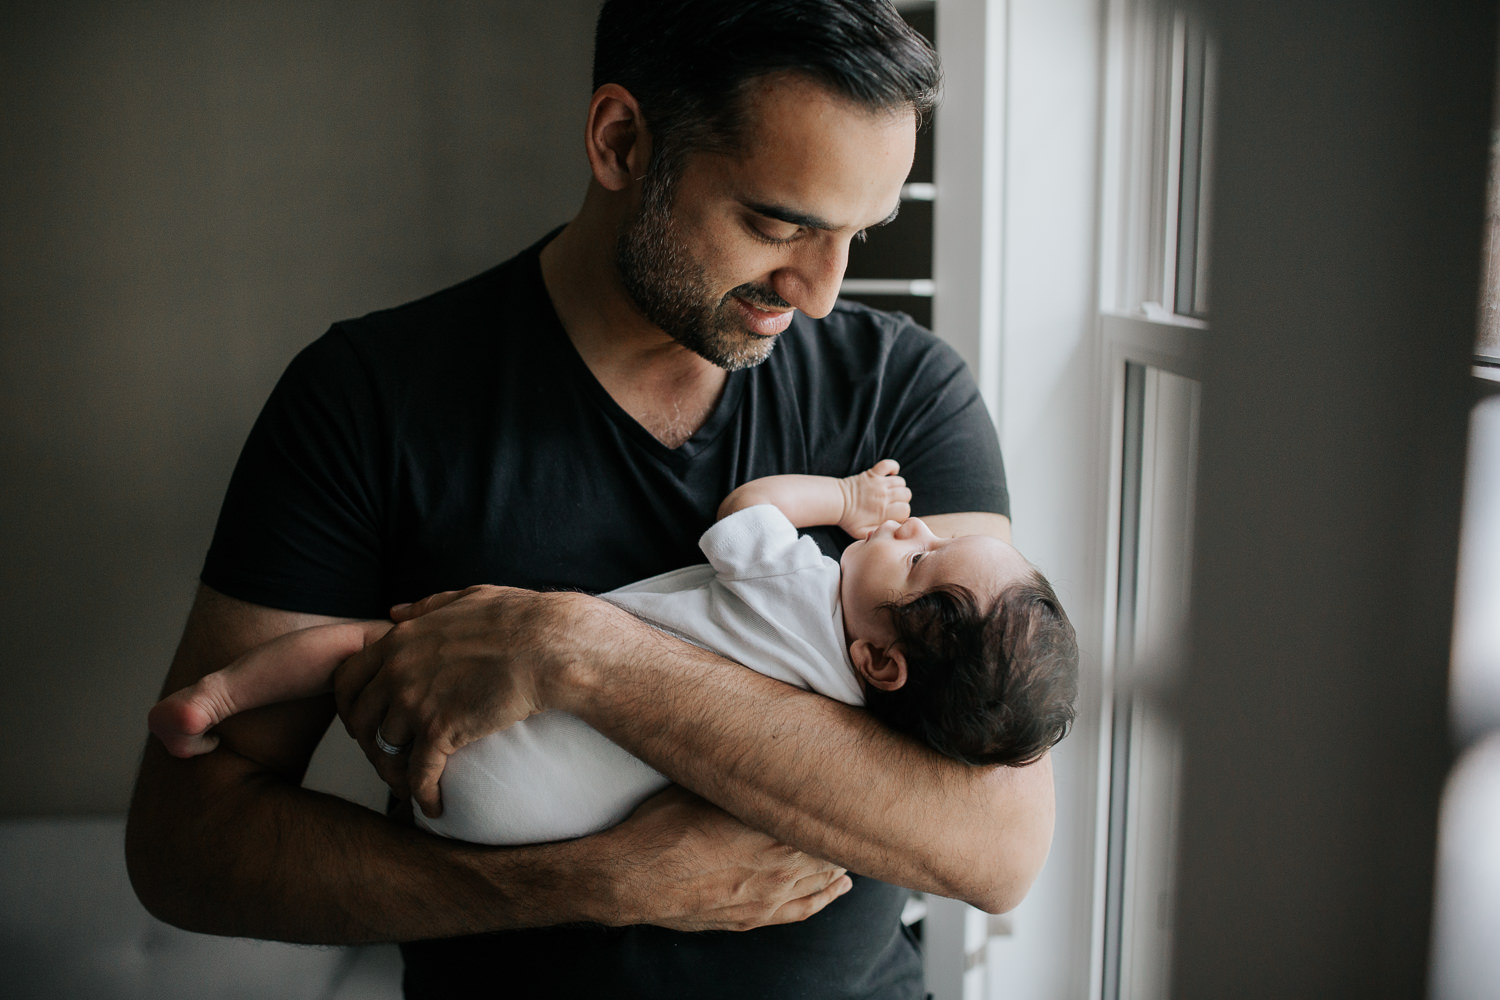 new father standing in front of window holding and smiling at 1 month old baby boy in onesie in his arms - Markham In-Home Photos